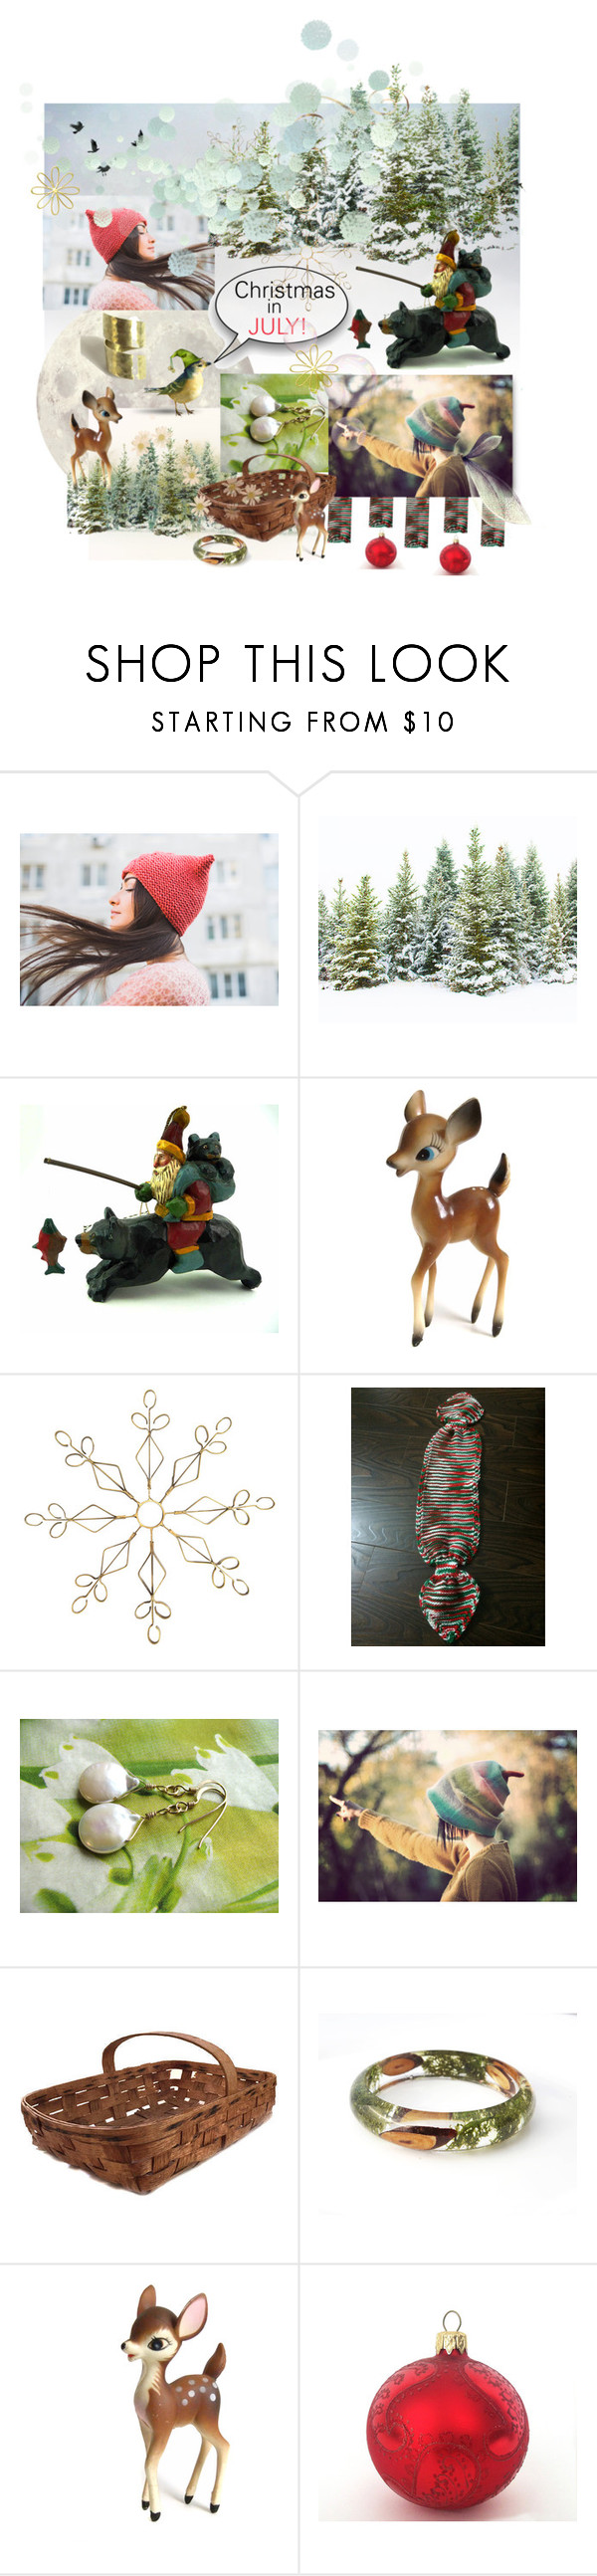 """""""Christmas in July"""" by seasidecollectibles ❤ liked on Polyvore featuring Clips, Park B. Smith, H&M, Hostess and vintage"""